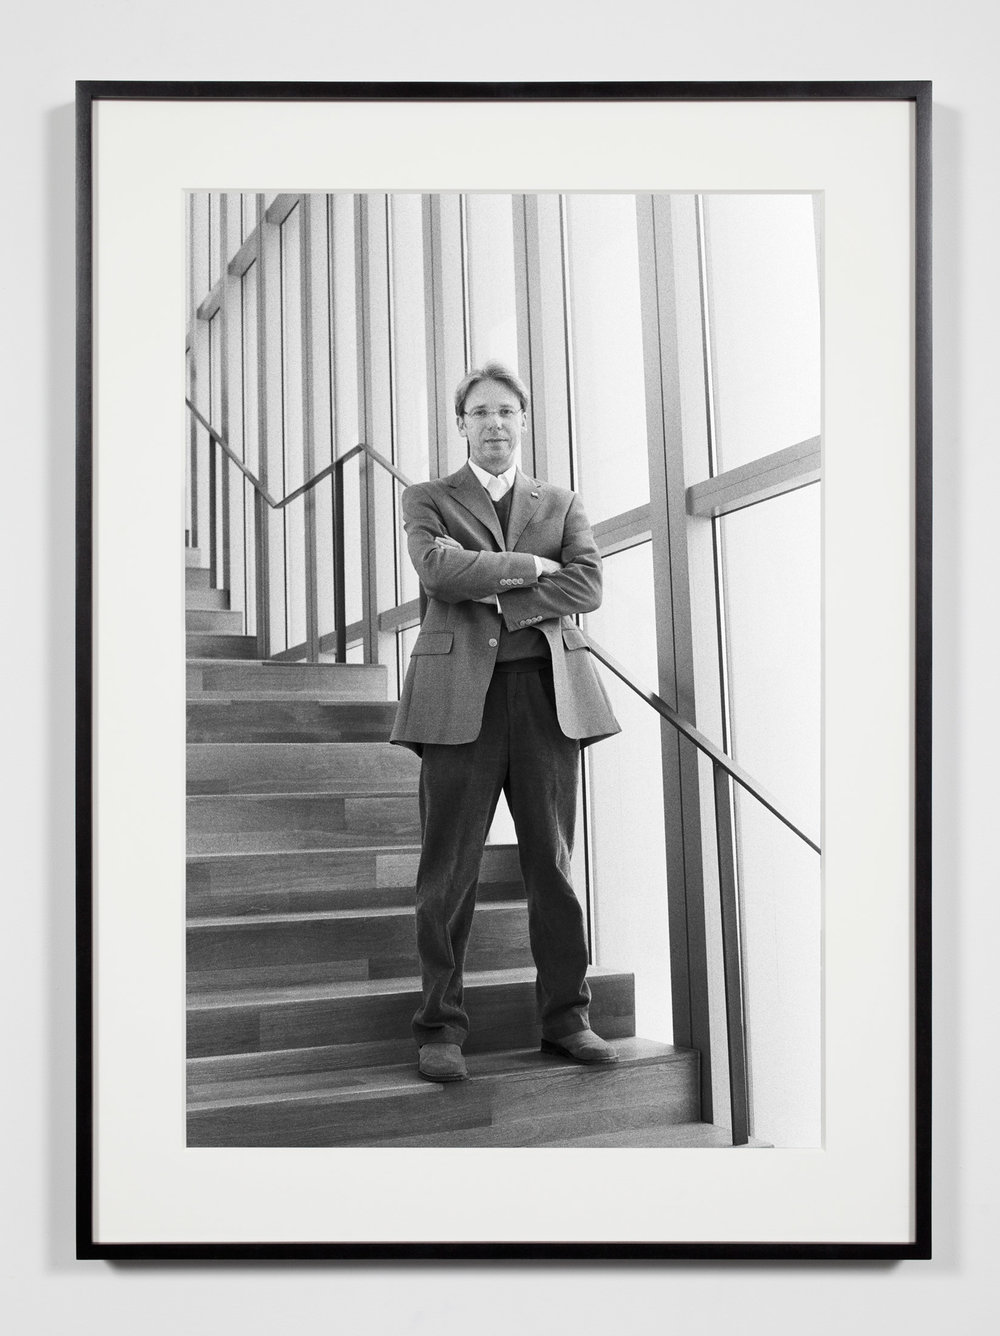 University Museum Director, Ann Arbor, Michigan, March 28, 2009   2011  Epson Ultrachrome K3 archival ink jet print on Hahnemühle Photo Rag paper  36 3/8 x 26 3/8 inches   Industrial Portraits, 2008–    A Diagram of Forces, 2011